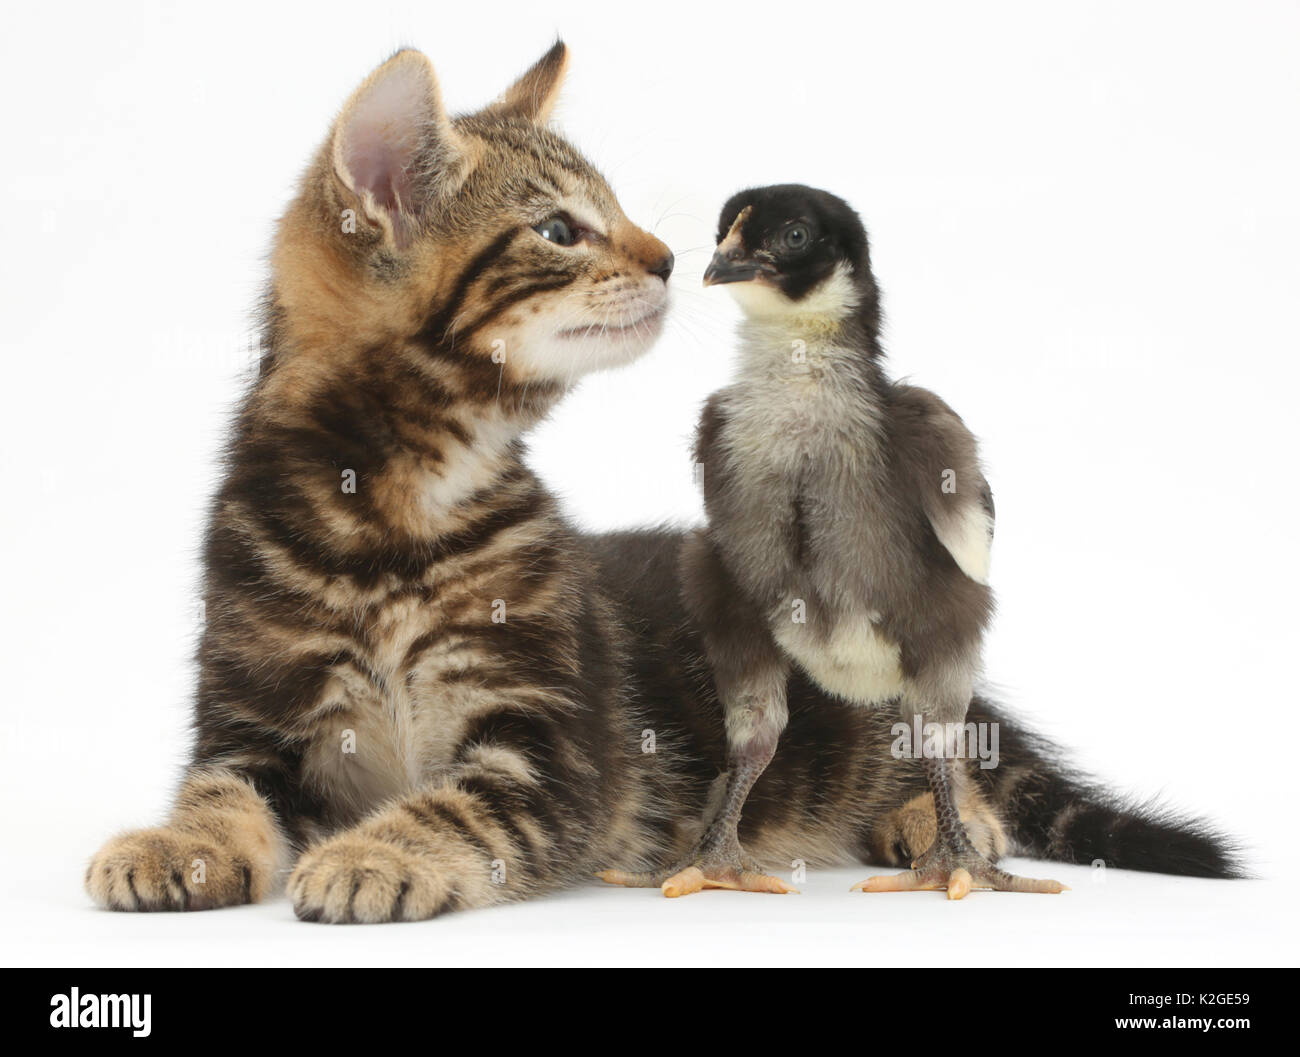 Tabby kitten, Picasso, 7 weeks, with a domestic hen chick. - Stock Image